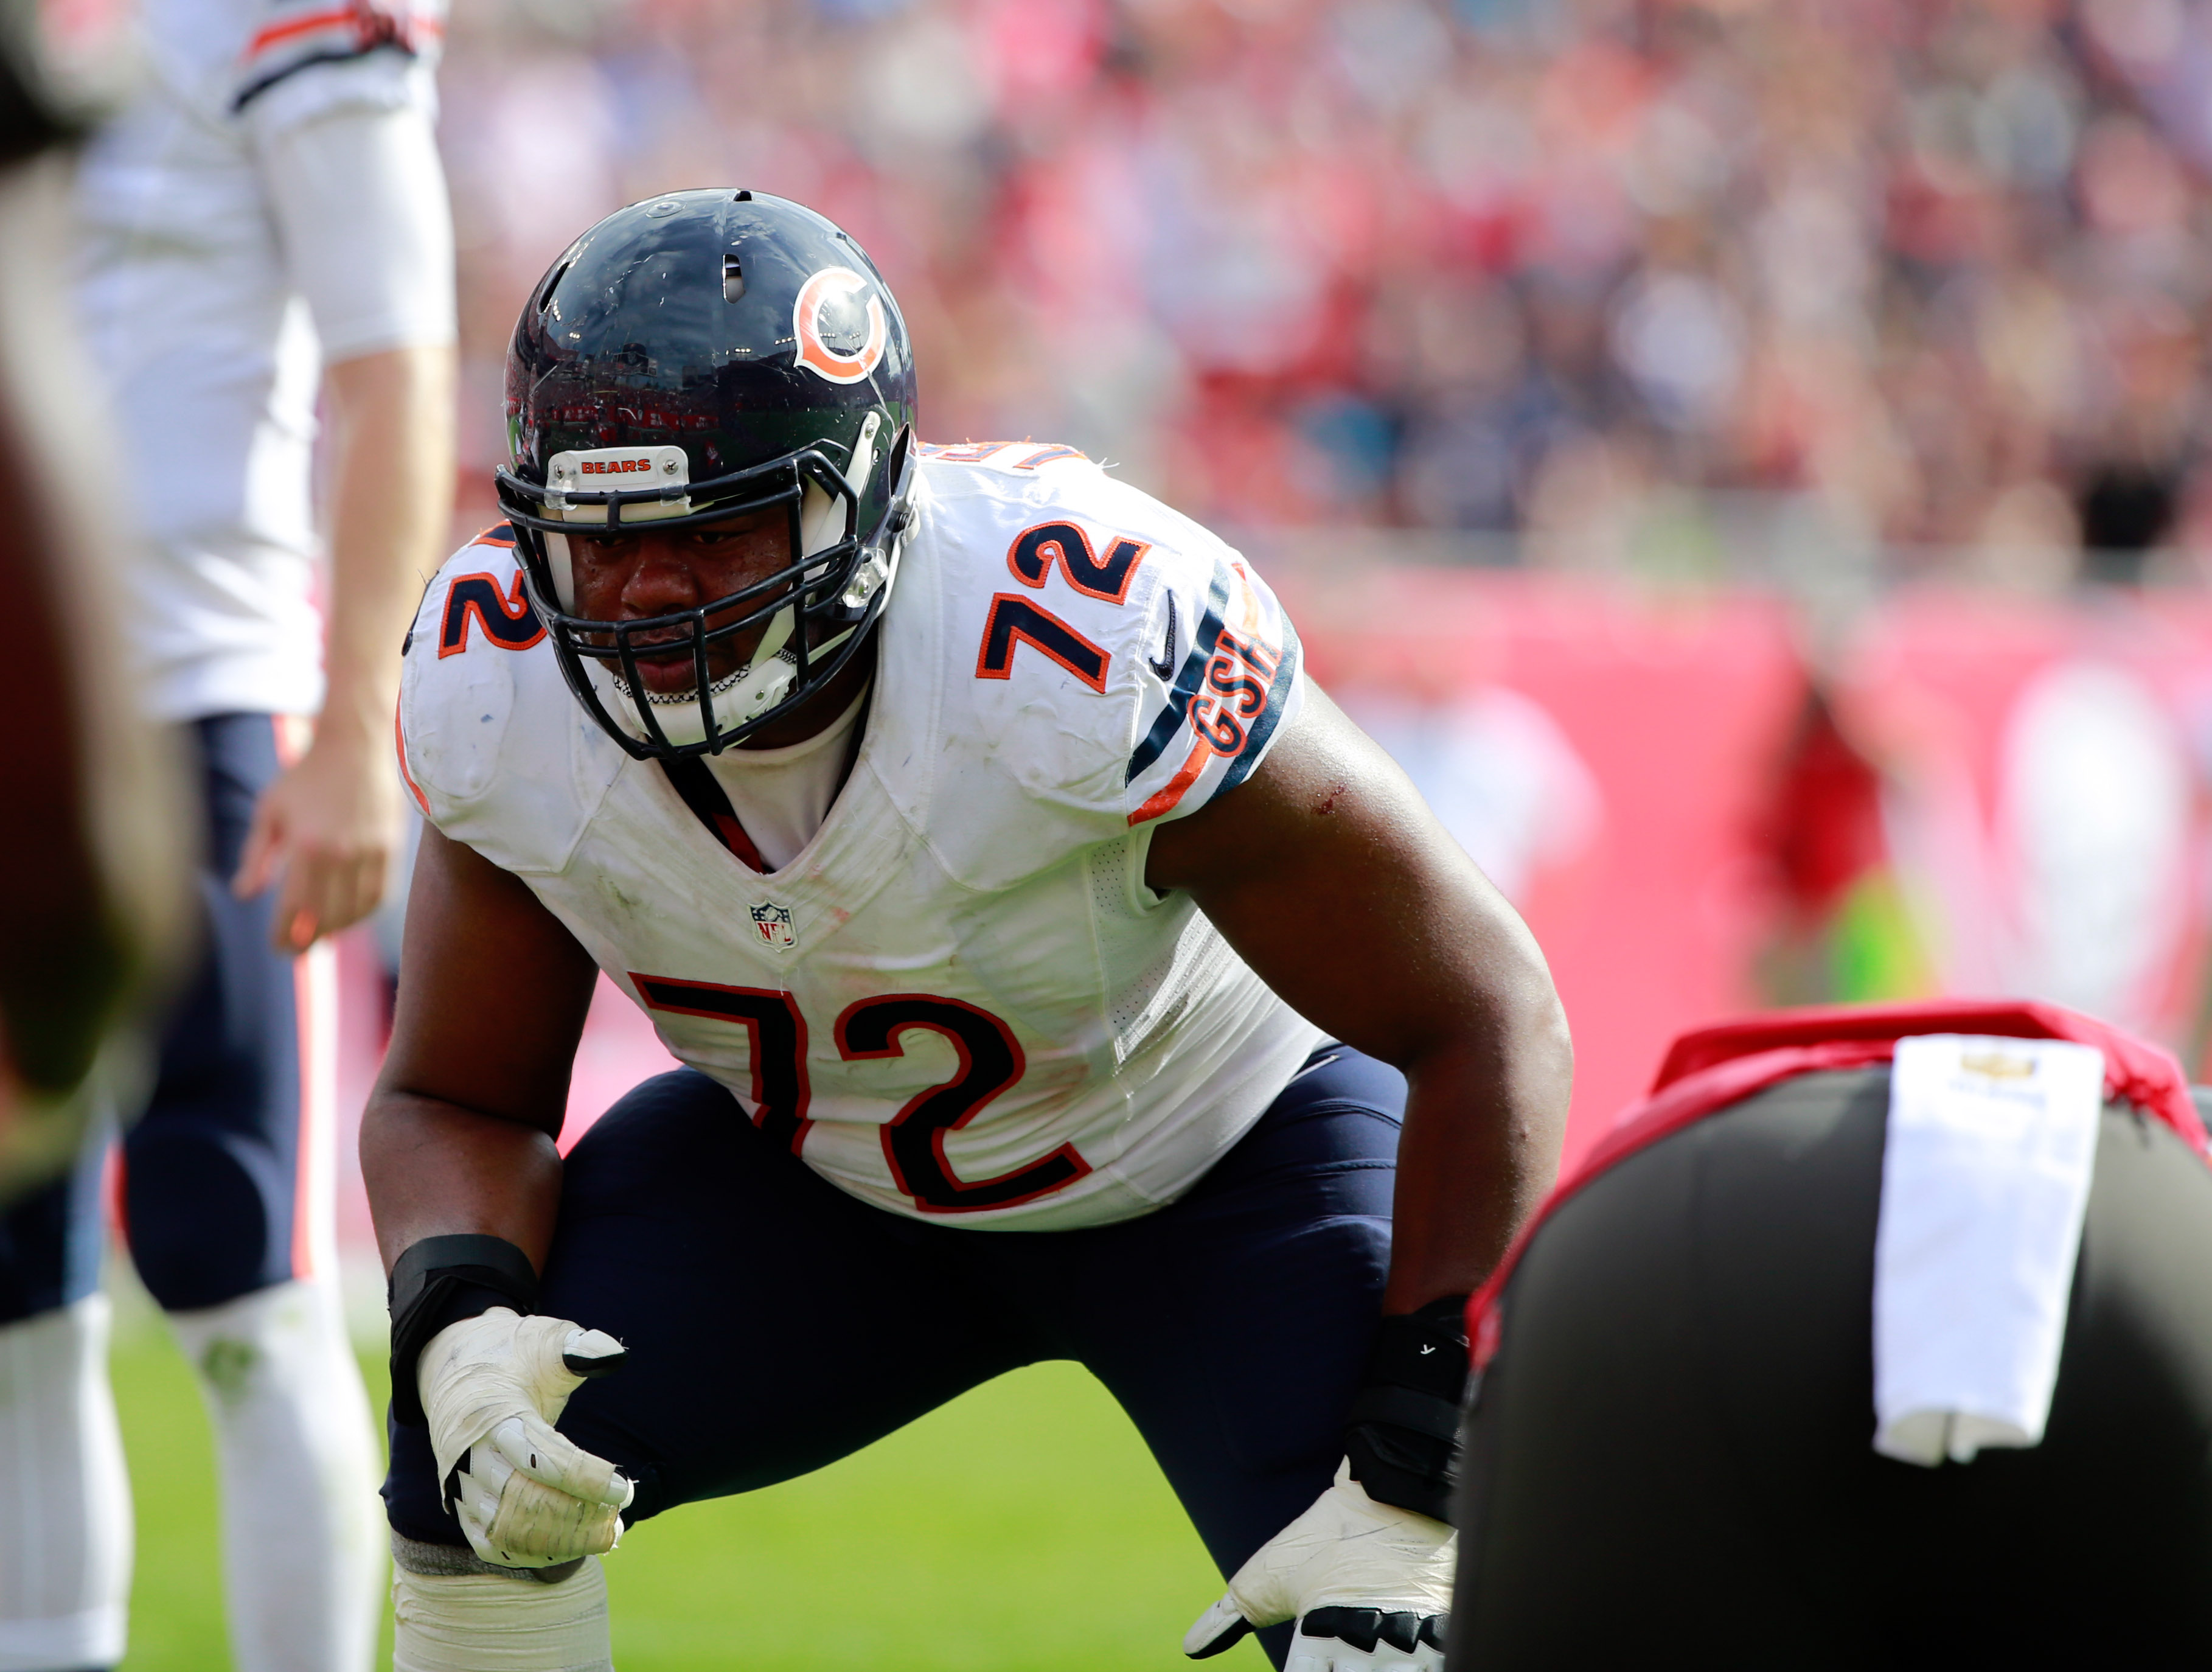 9049322-nfl-chicago-bears-at-tampa-bay-buccaneers